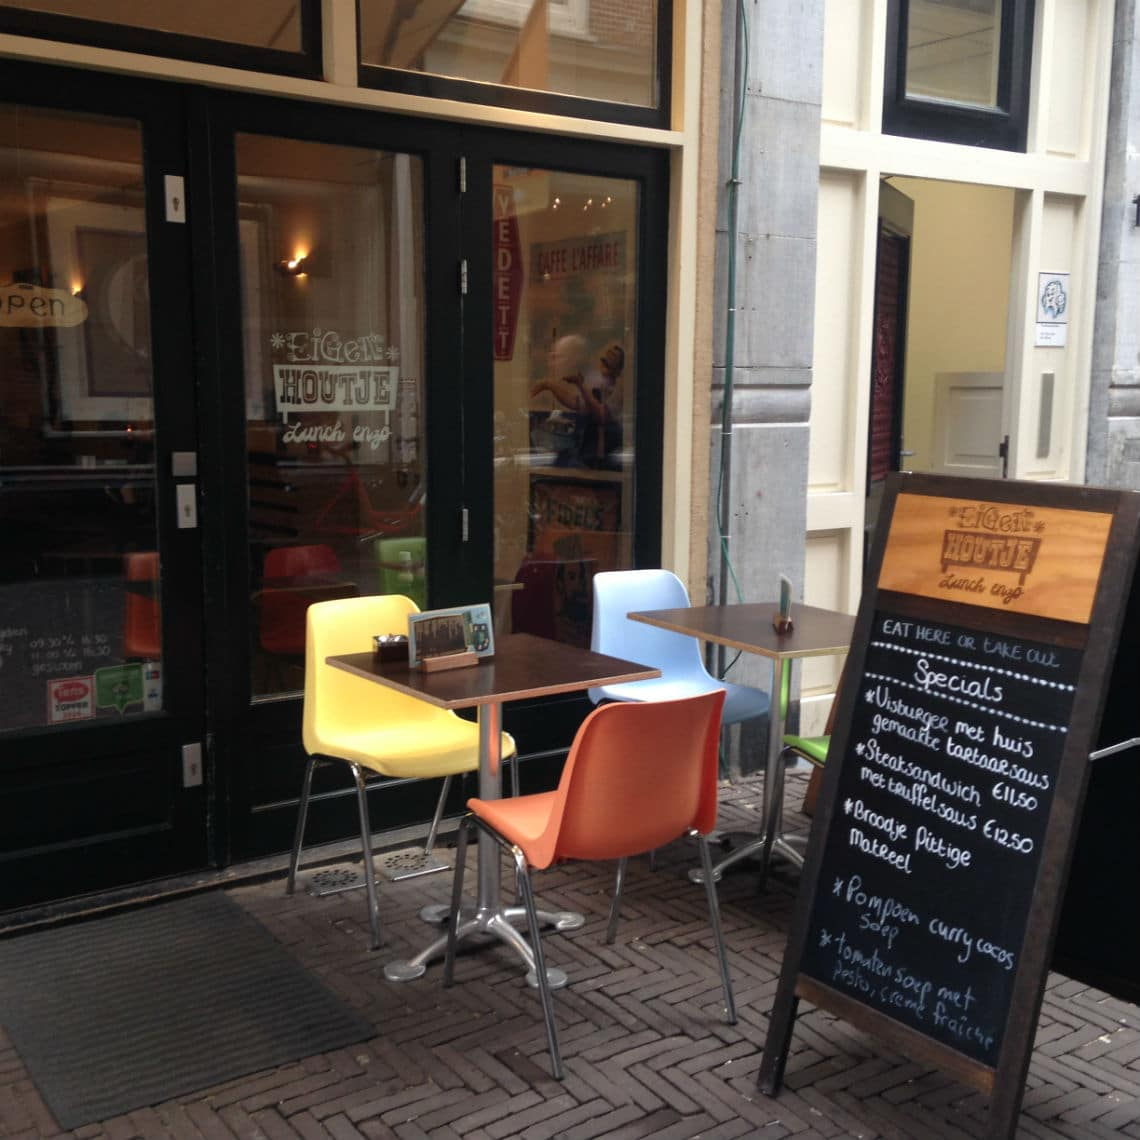 Restaurant: Eigen Houtje - The Hague, the Netherlands